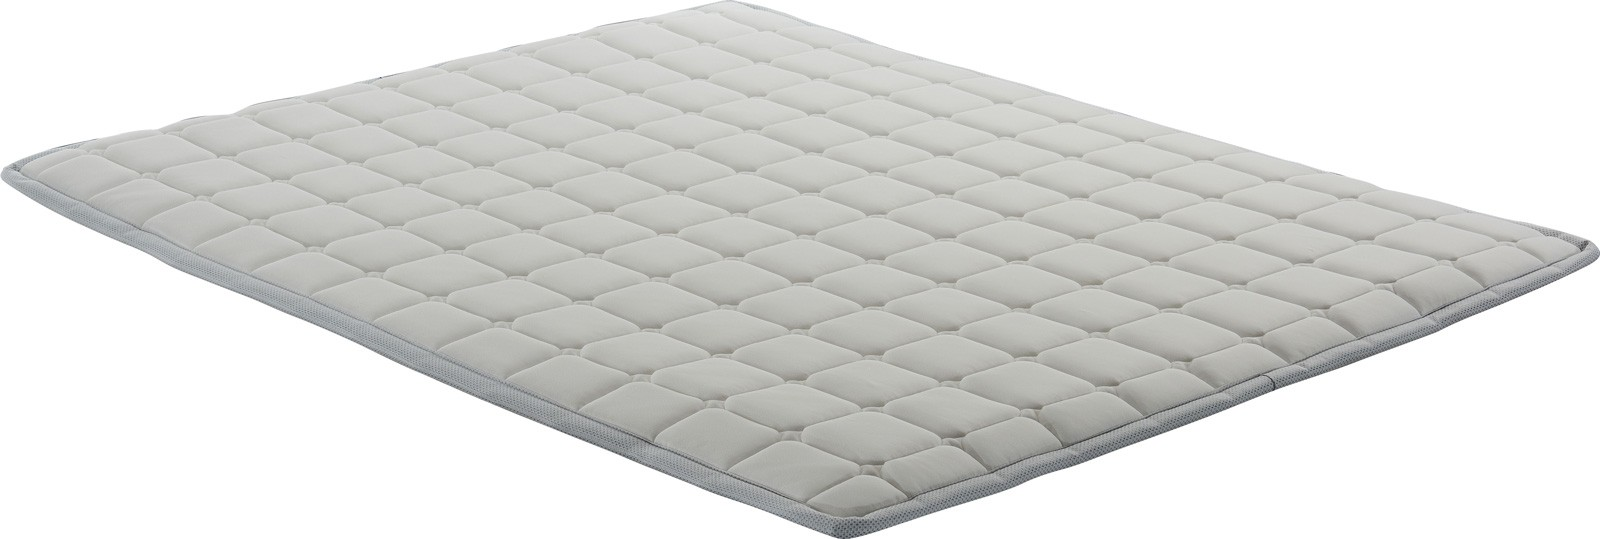 Topper Sleep Cover Plus